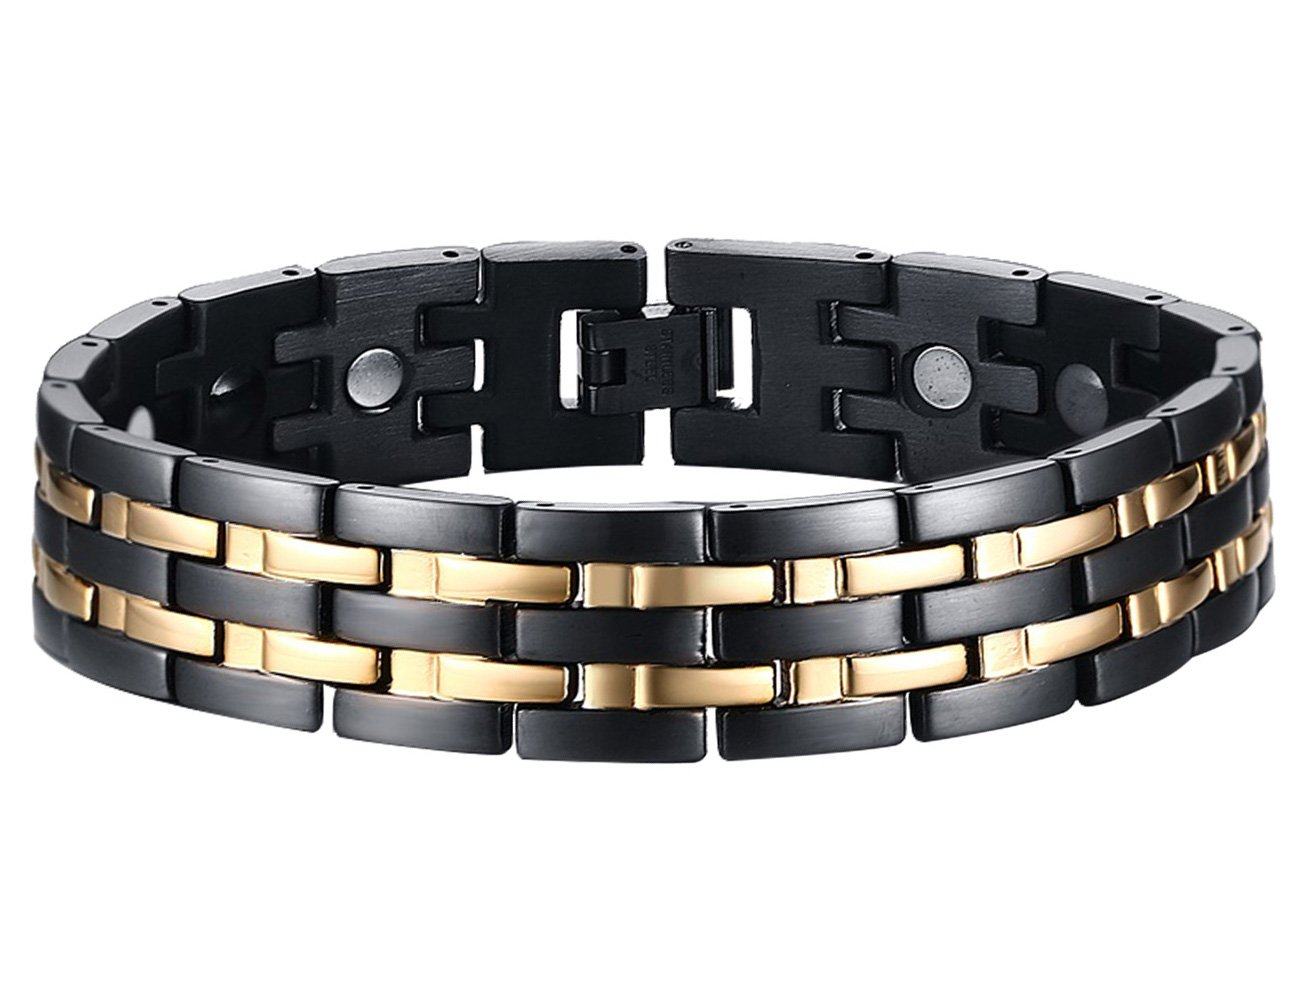 BisLinks® Titanium Magnetic Health Bracelet For Men & Women Germanium Stone Arthritis Chronic Pain Bio Therapy Carpal Tunnel Relief Negative Ion (3000 Gauss Each Magnet) + FREE LINK REMOVAL TOOL by BisLinks® (Image #2)